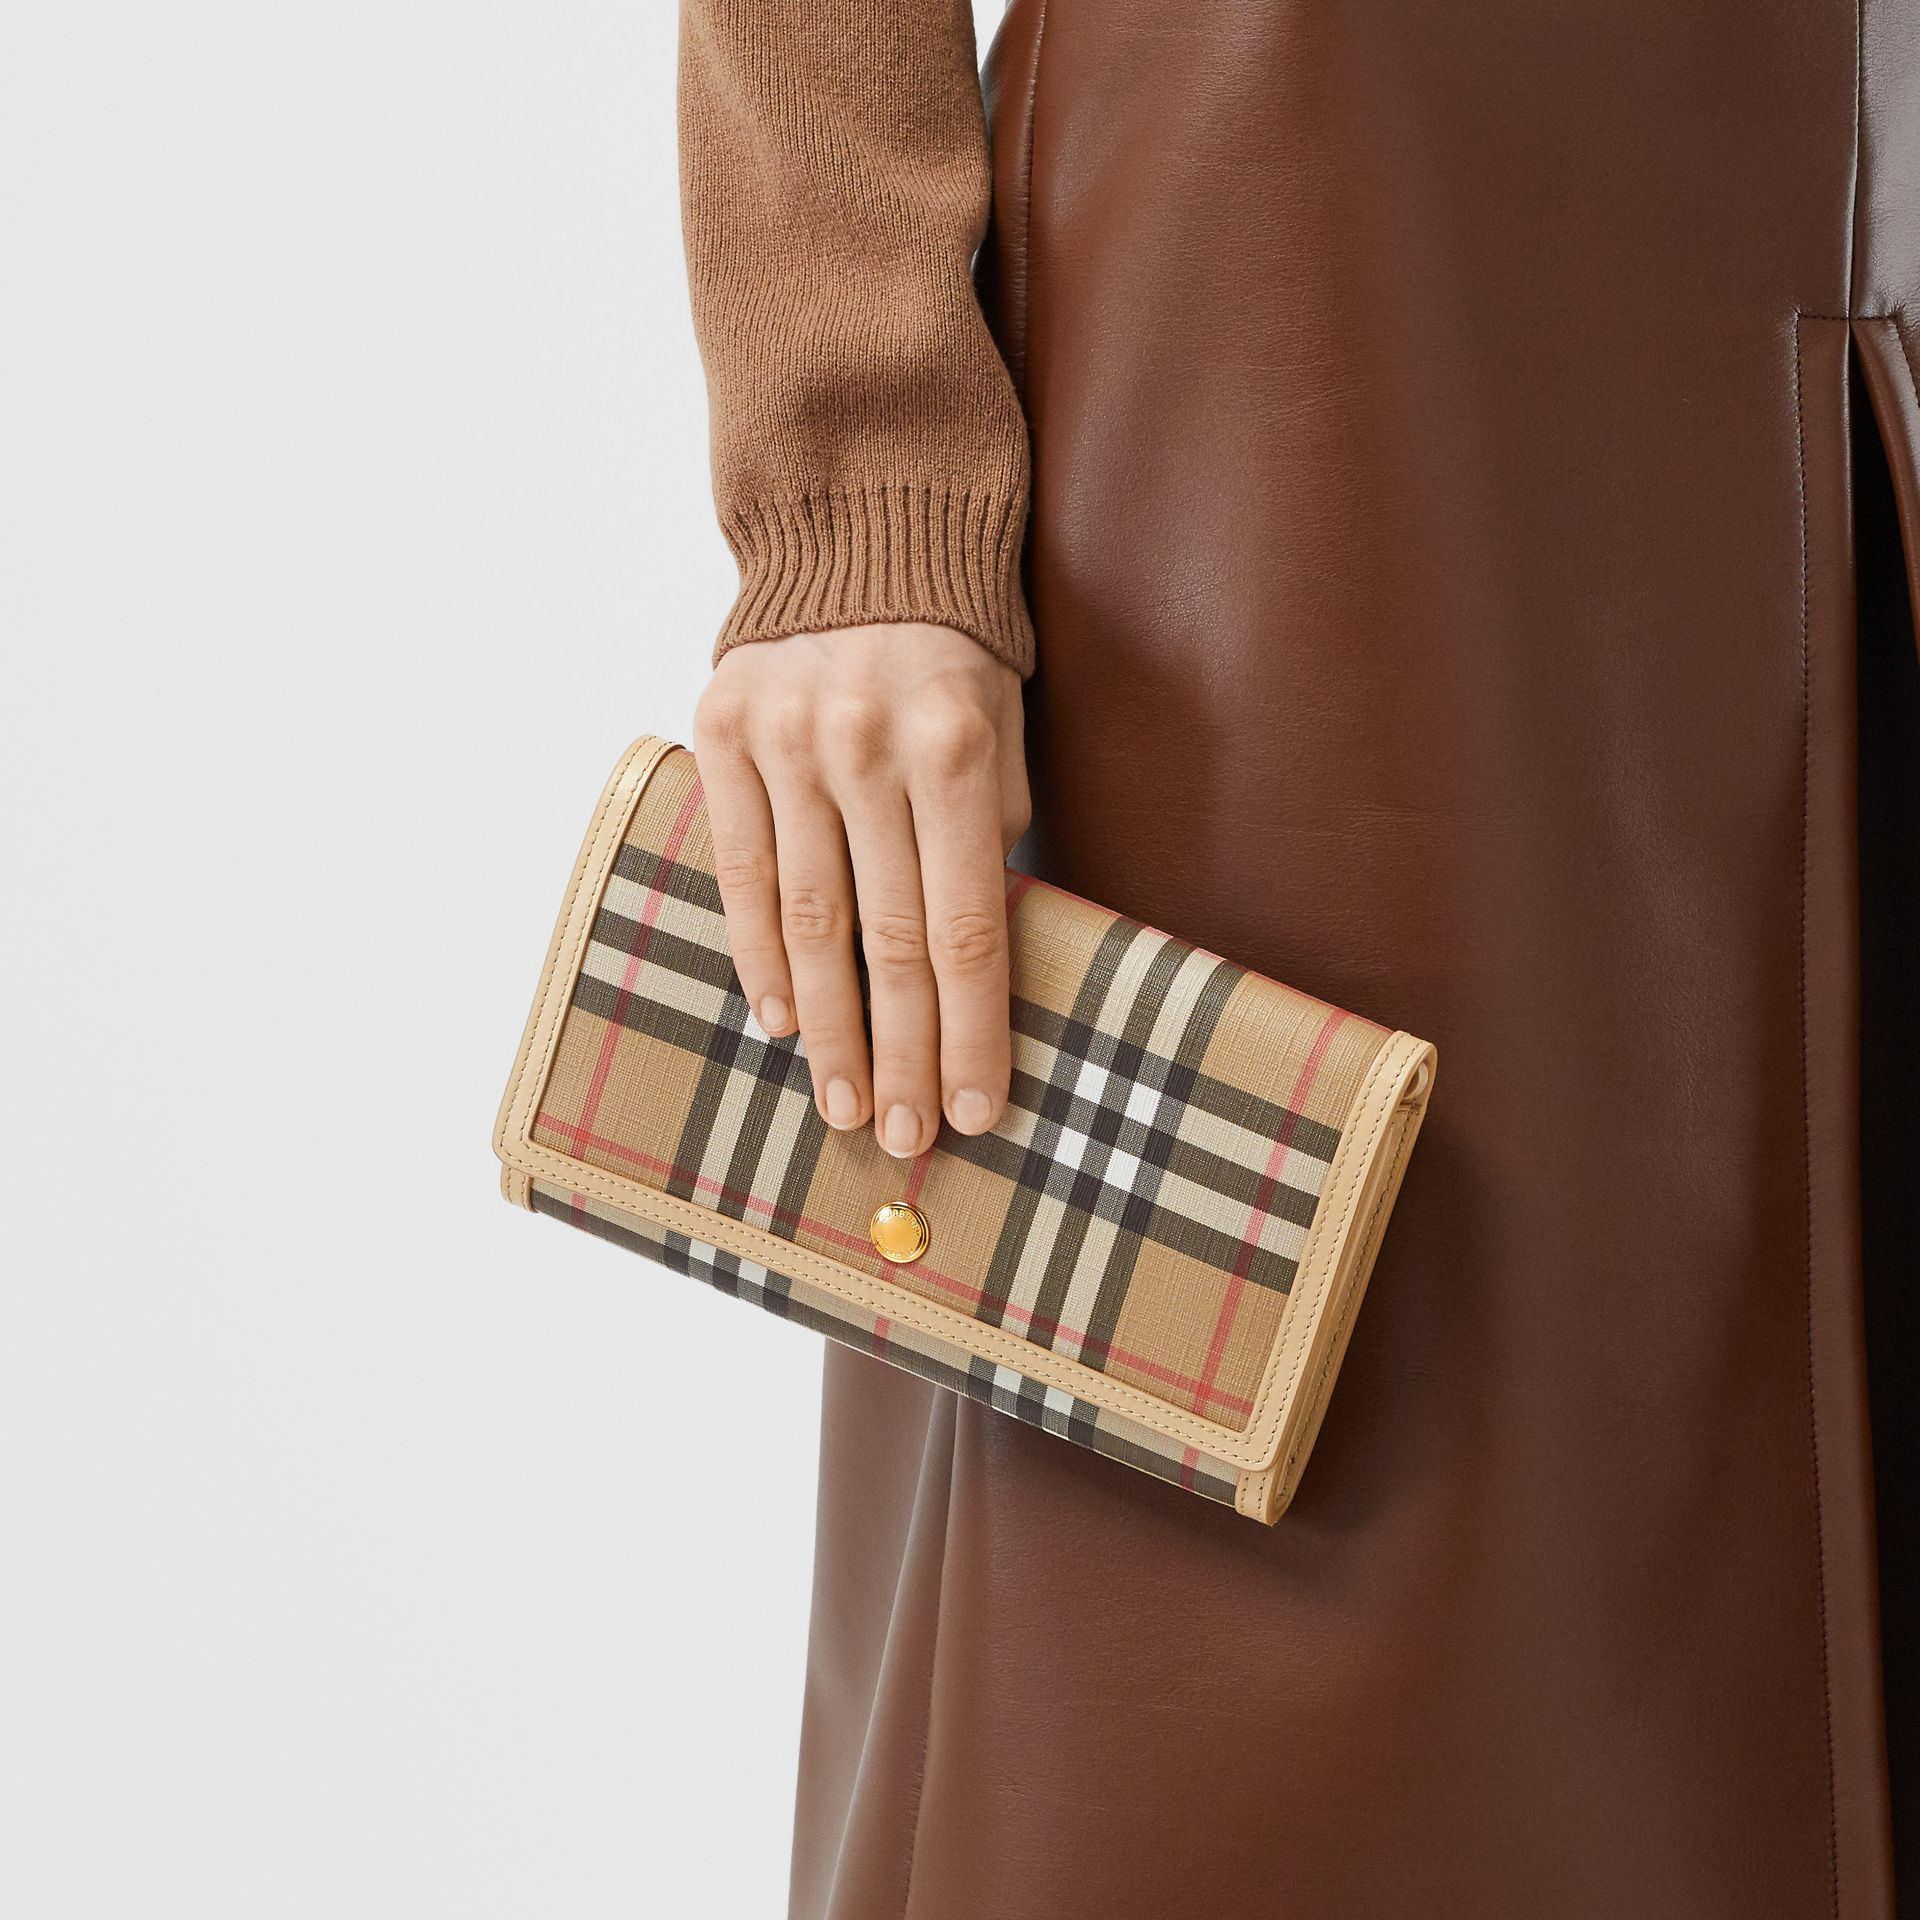 Vintage Check E-canvas Wallet with Detachable Strap in Beige - Women | Burberry - gallery image 2